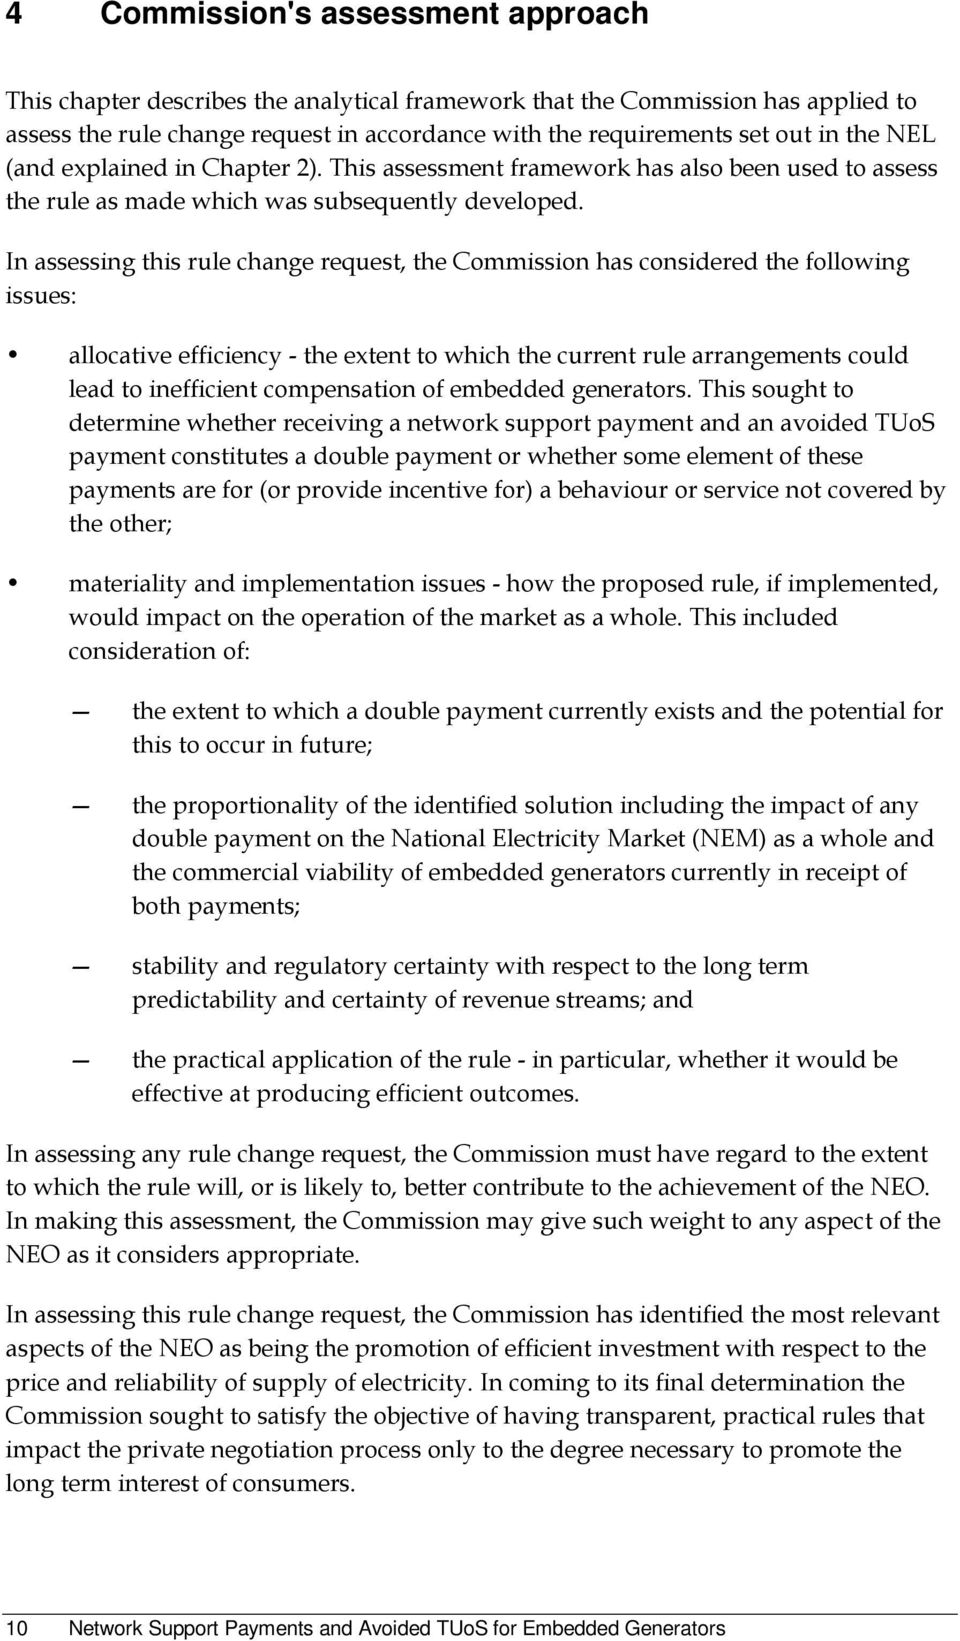 In assessing this rule change request, the Commission has considered the following issues: allocative efficiency - the extent to which the current rule arrangements could lead to inefficient